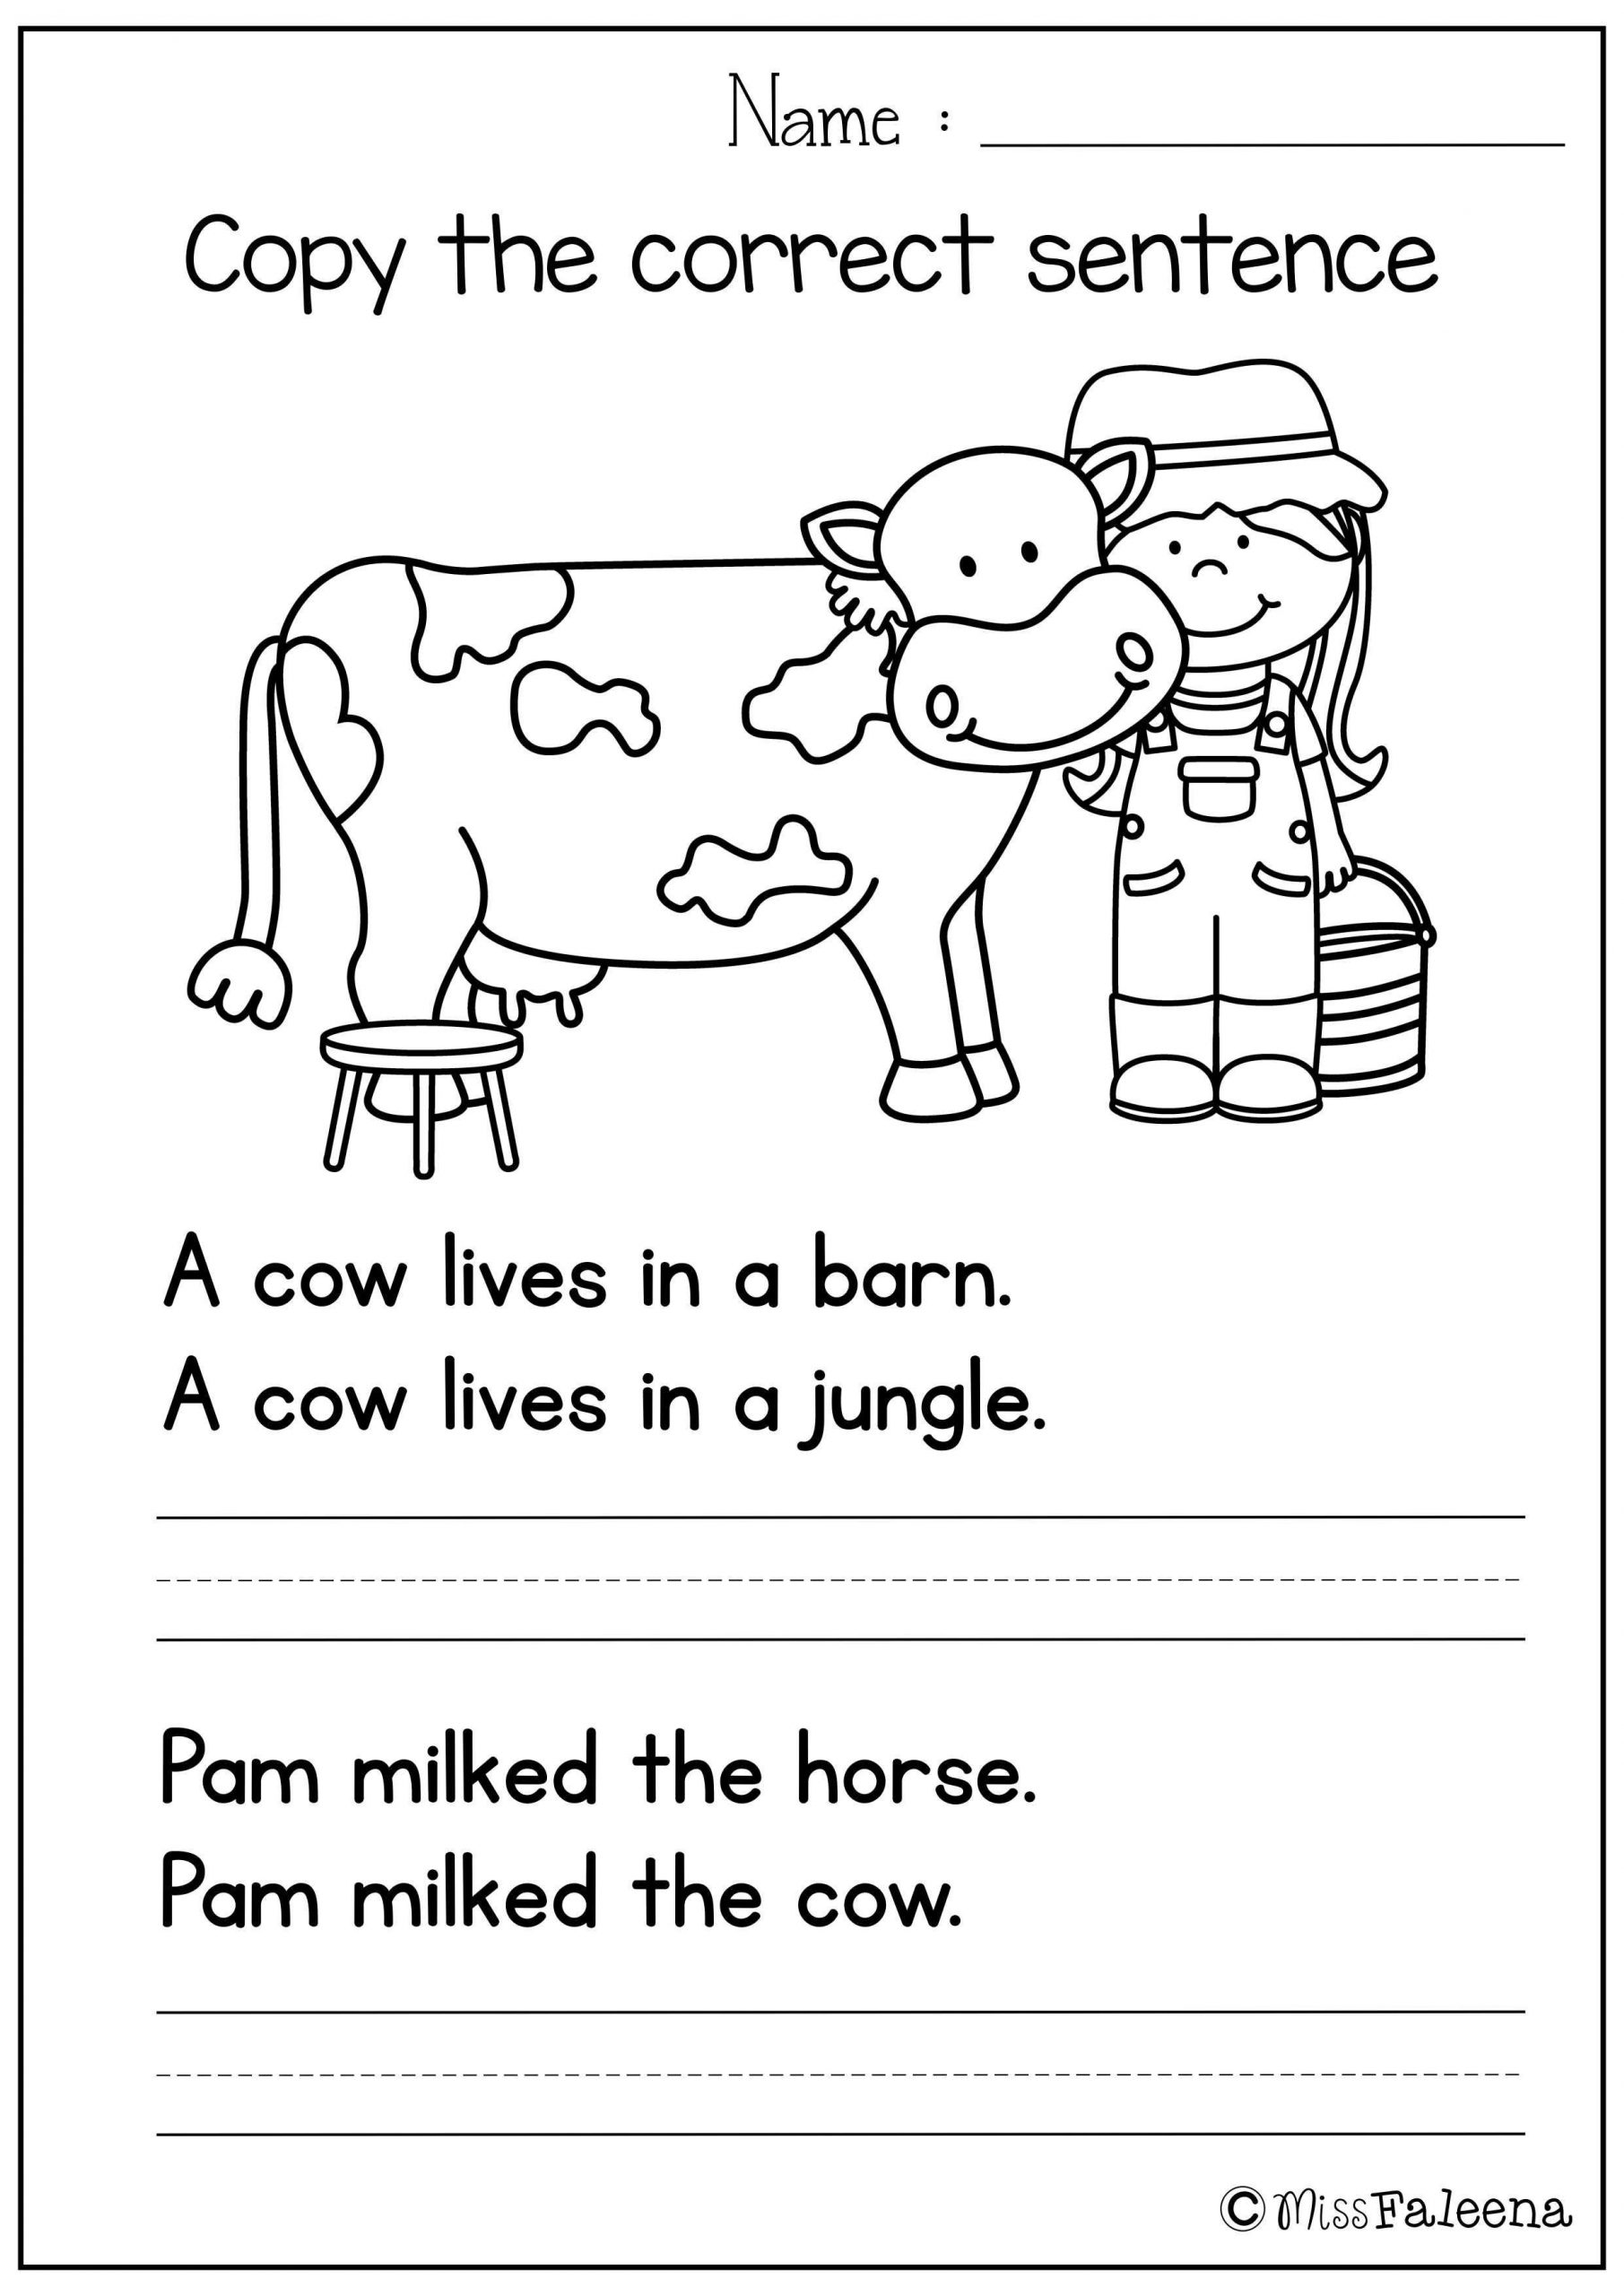 Sentence Worksheets for First Grade Free Sentence Writing Copy the Correct Sentence